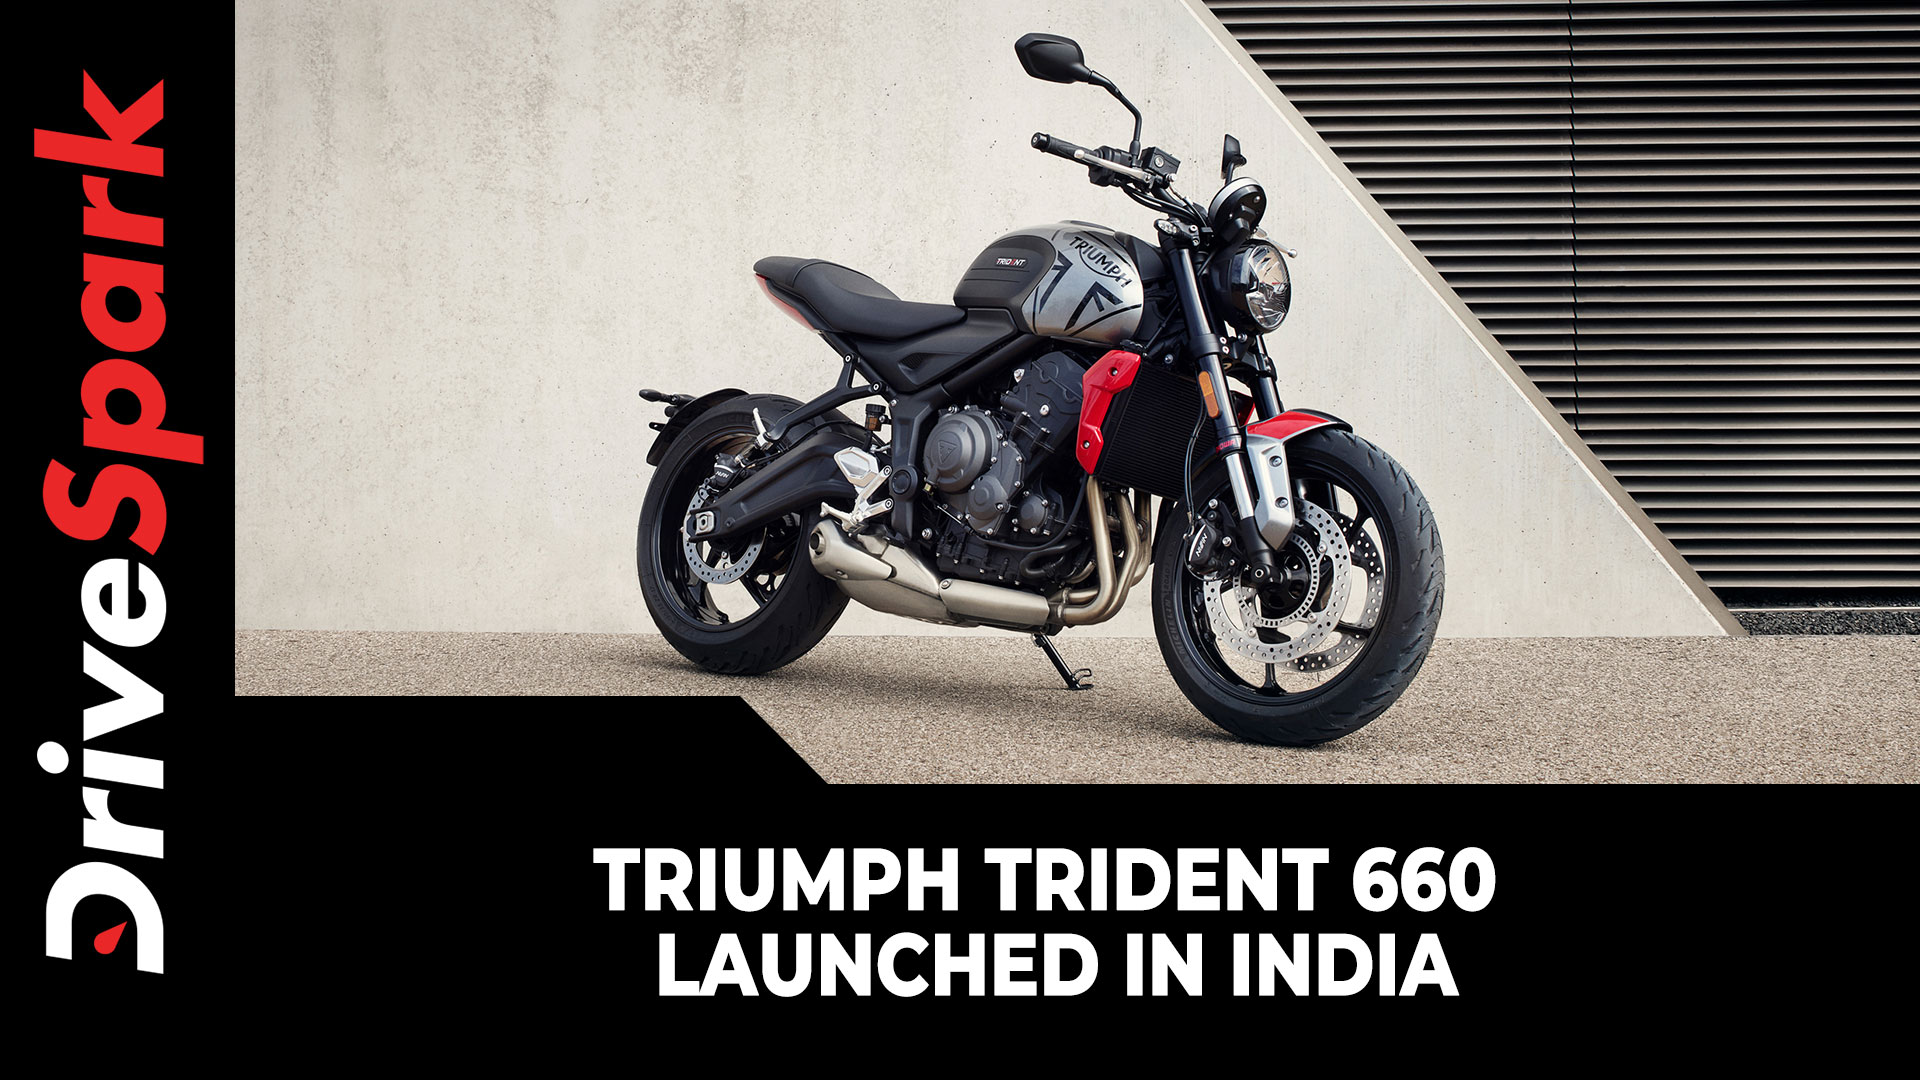 Triumph Trident 660 Launched In India | Price, Specs, Deliveries & Other Details